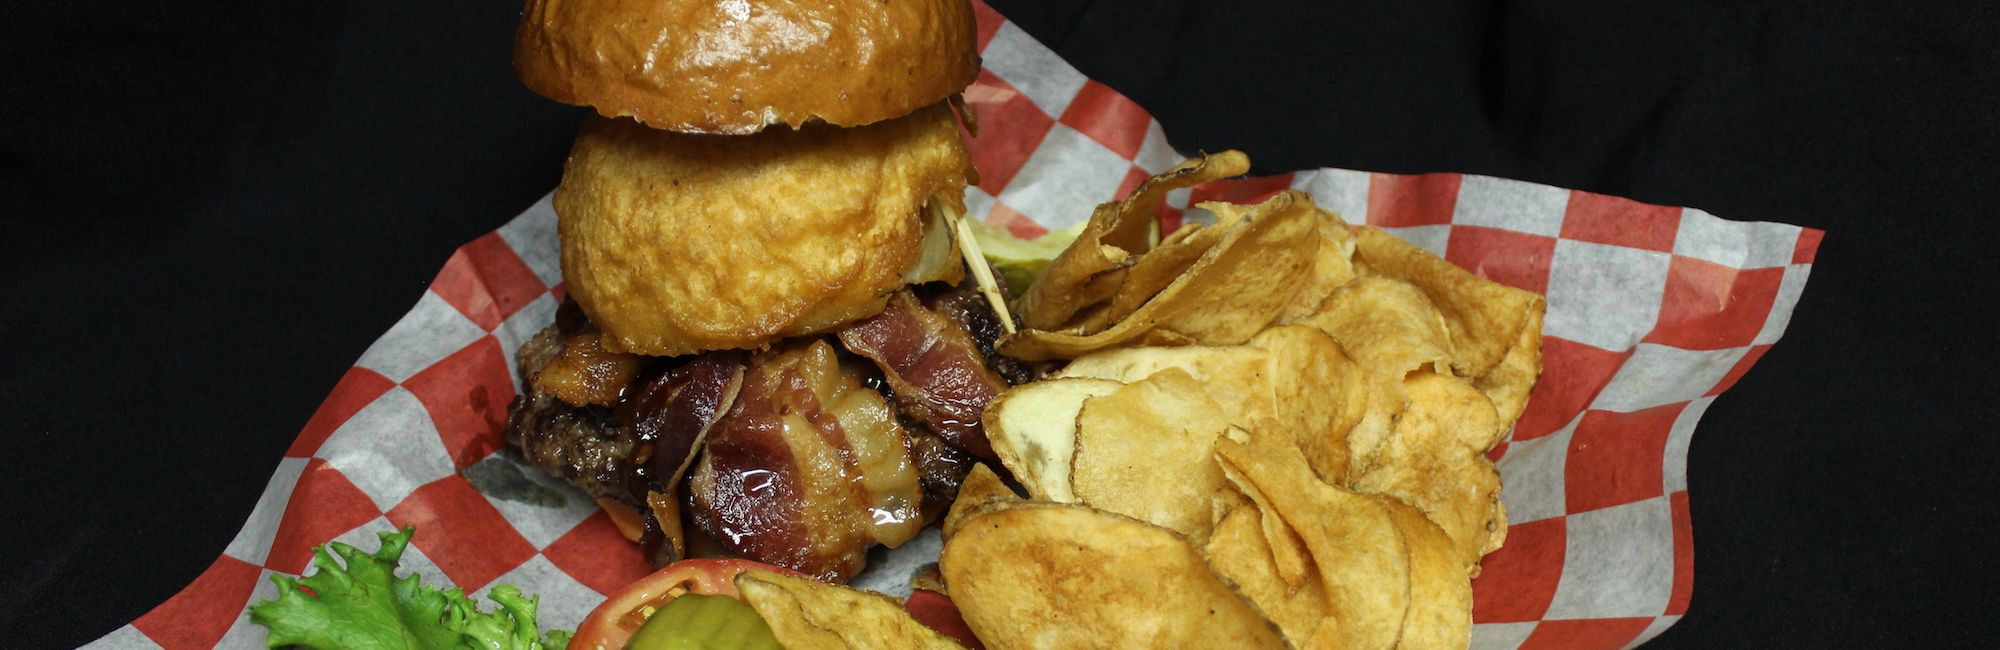 Beckett's Burger Bar - The Best Place for Burgers in Bowling Green & Now Delivered to Your Door!